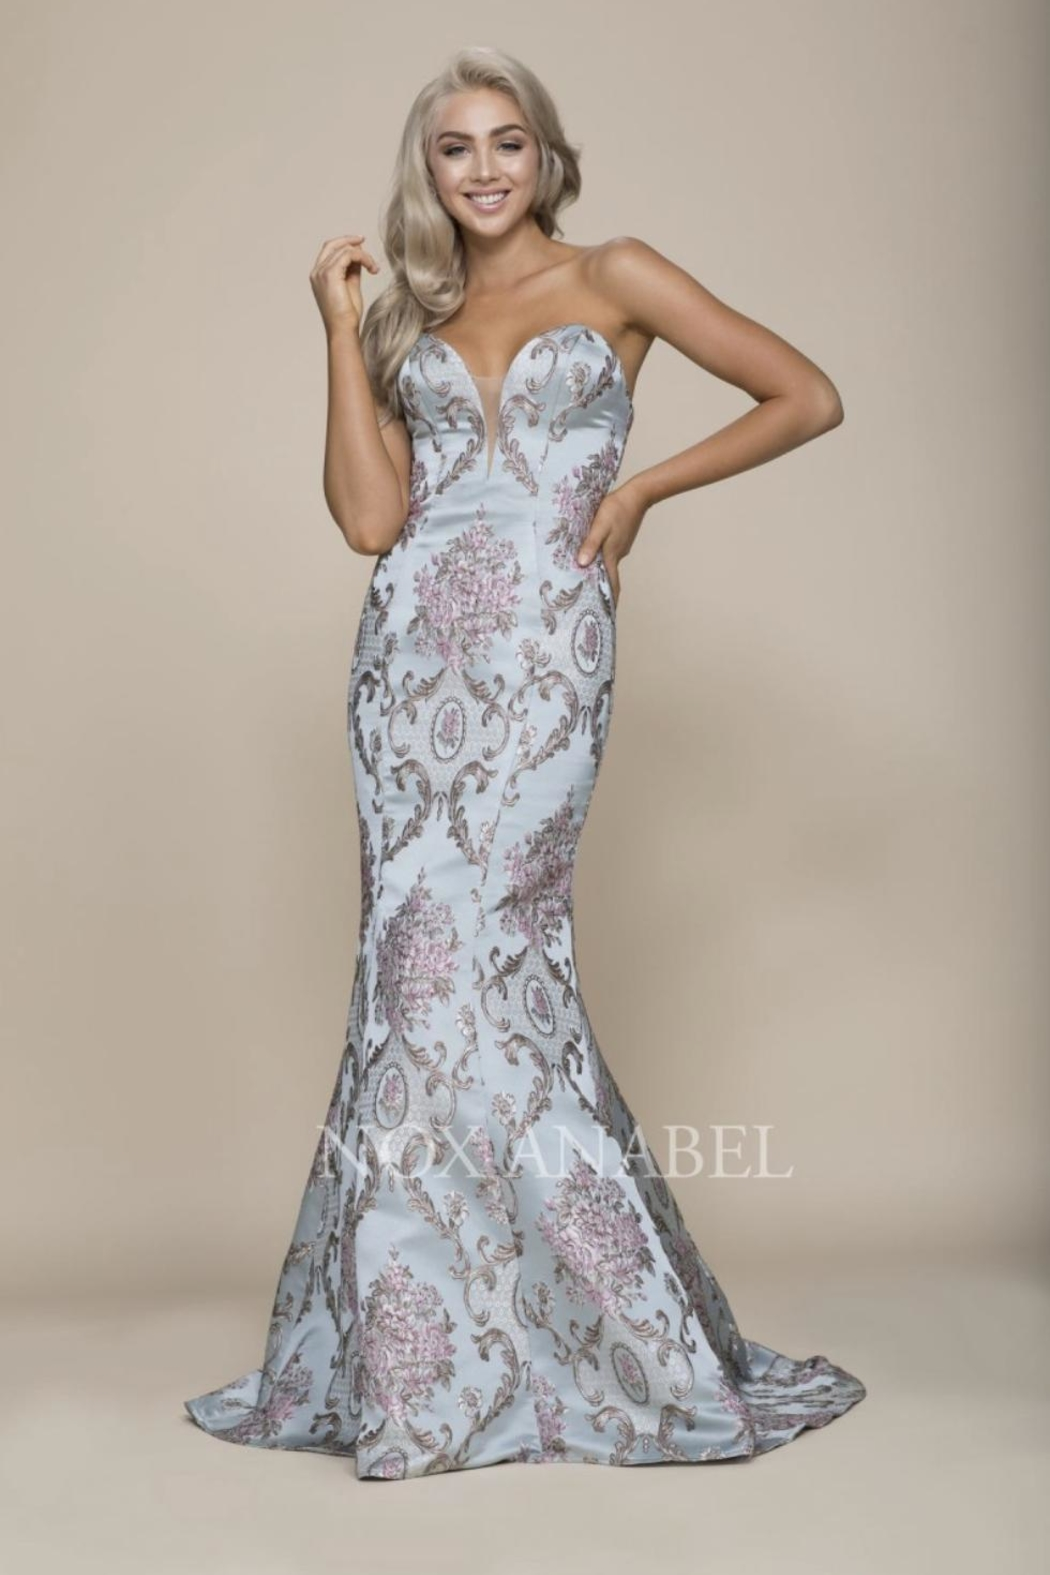 NOX A N A B E L Paisley Strapless Formal-Stress - Main Image